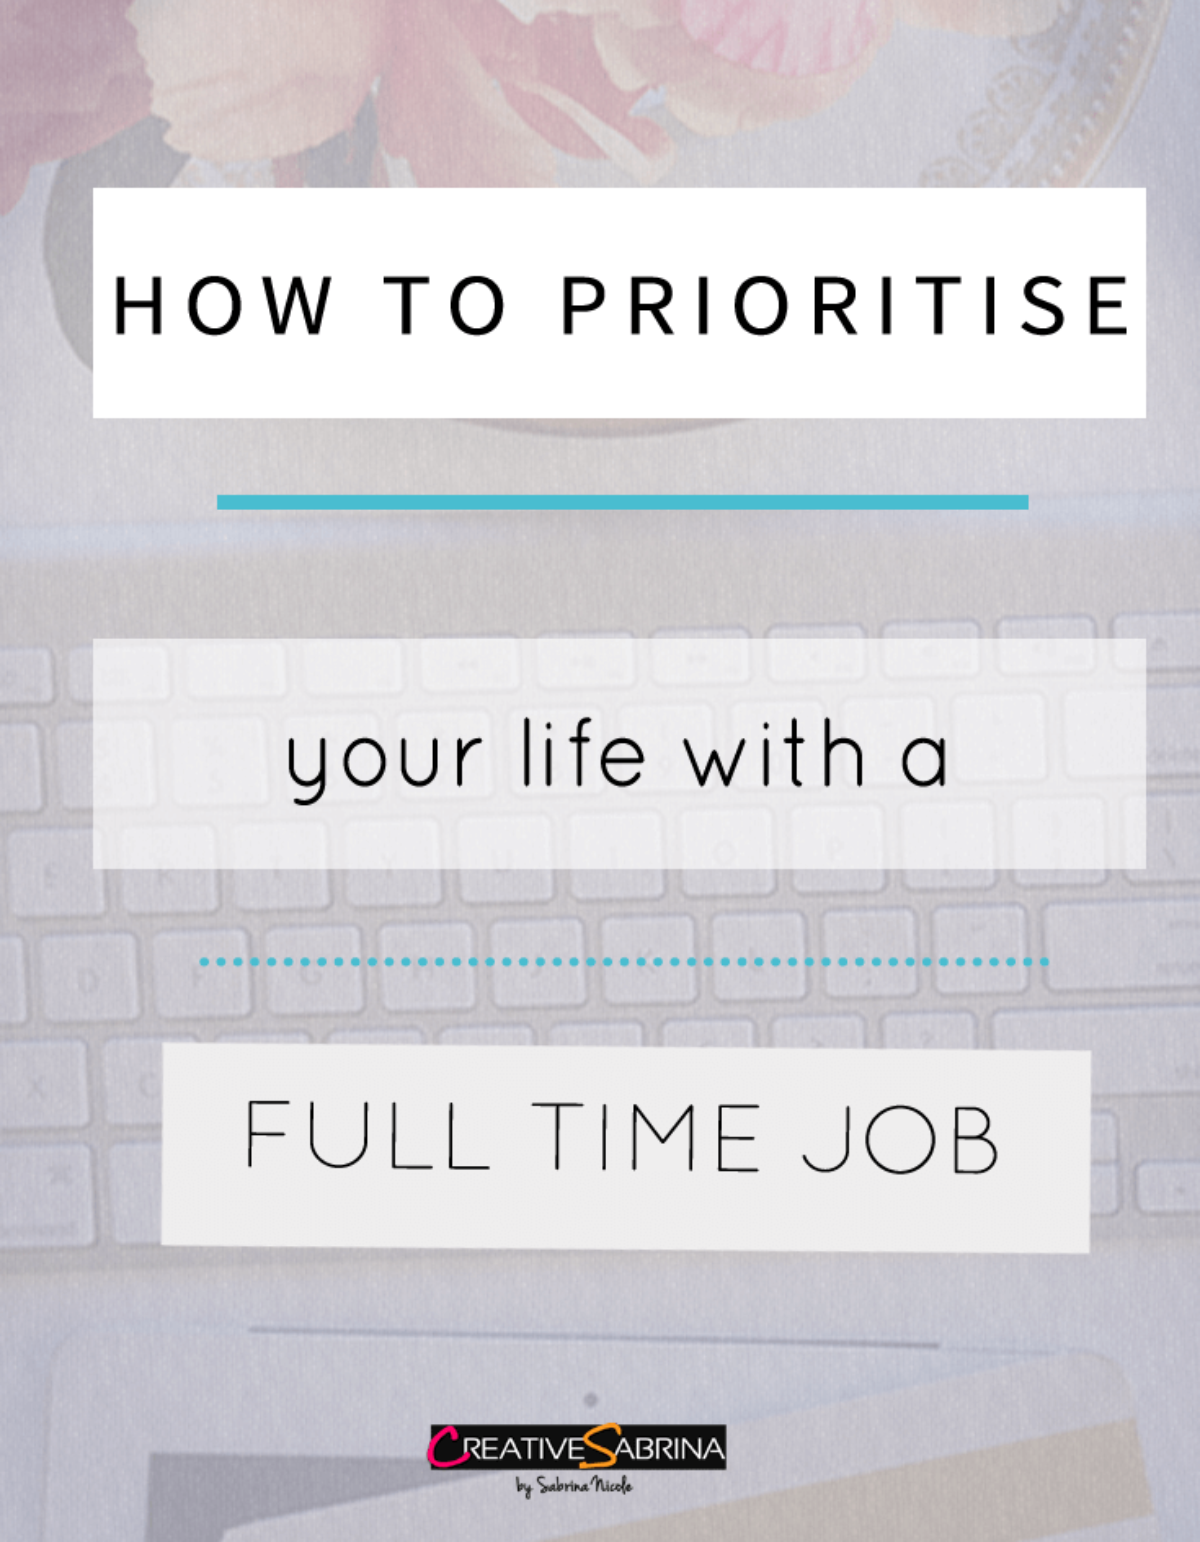 How To Prioritise Your Life With a Full Time Job